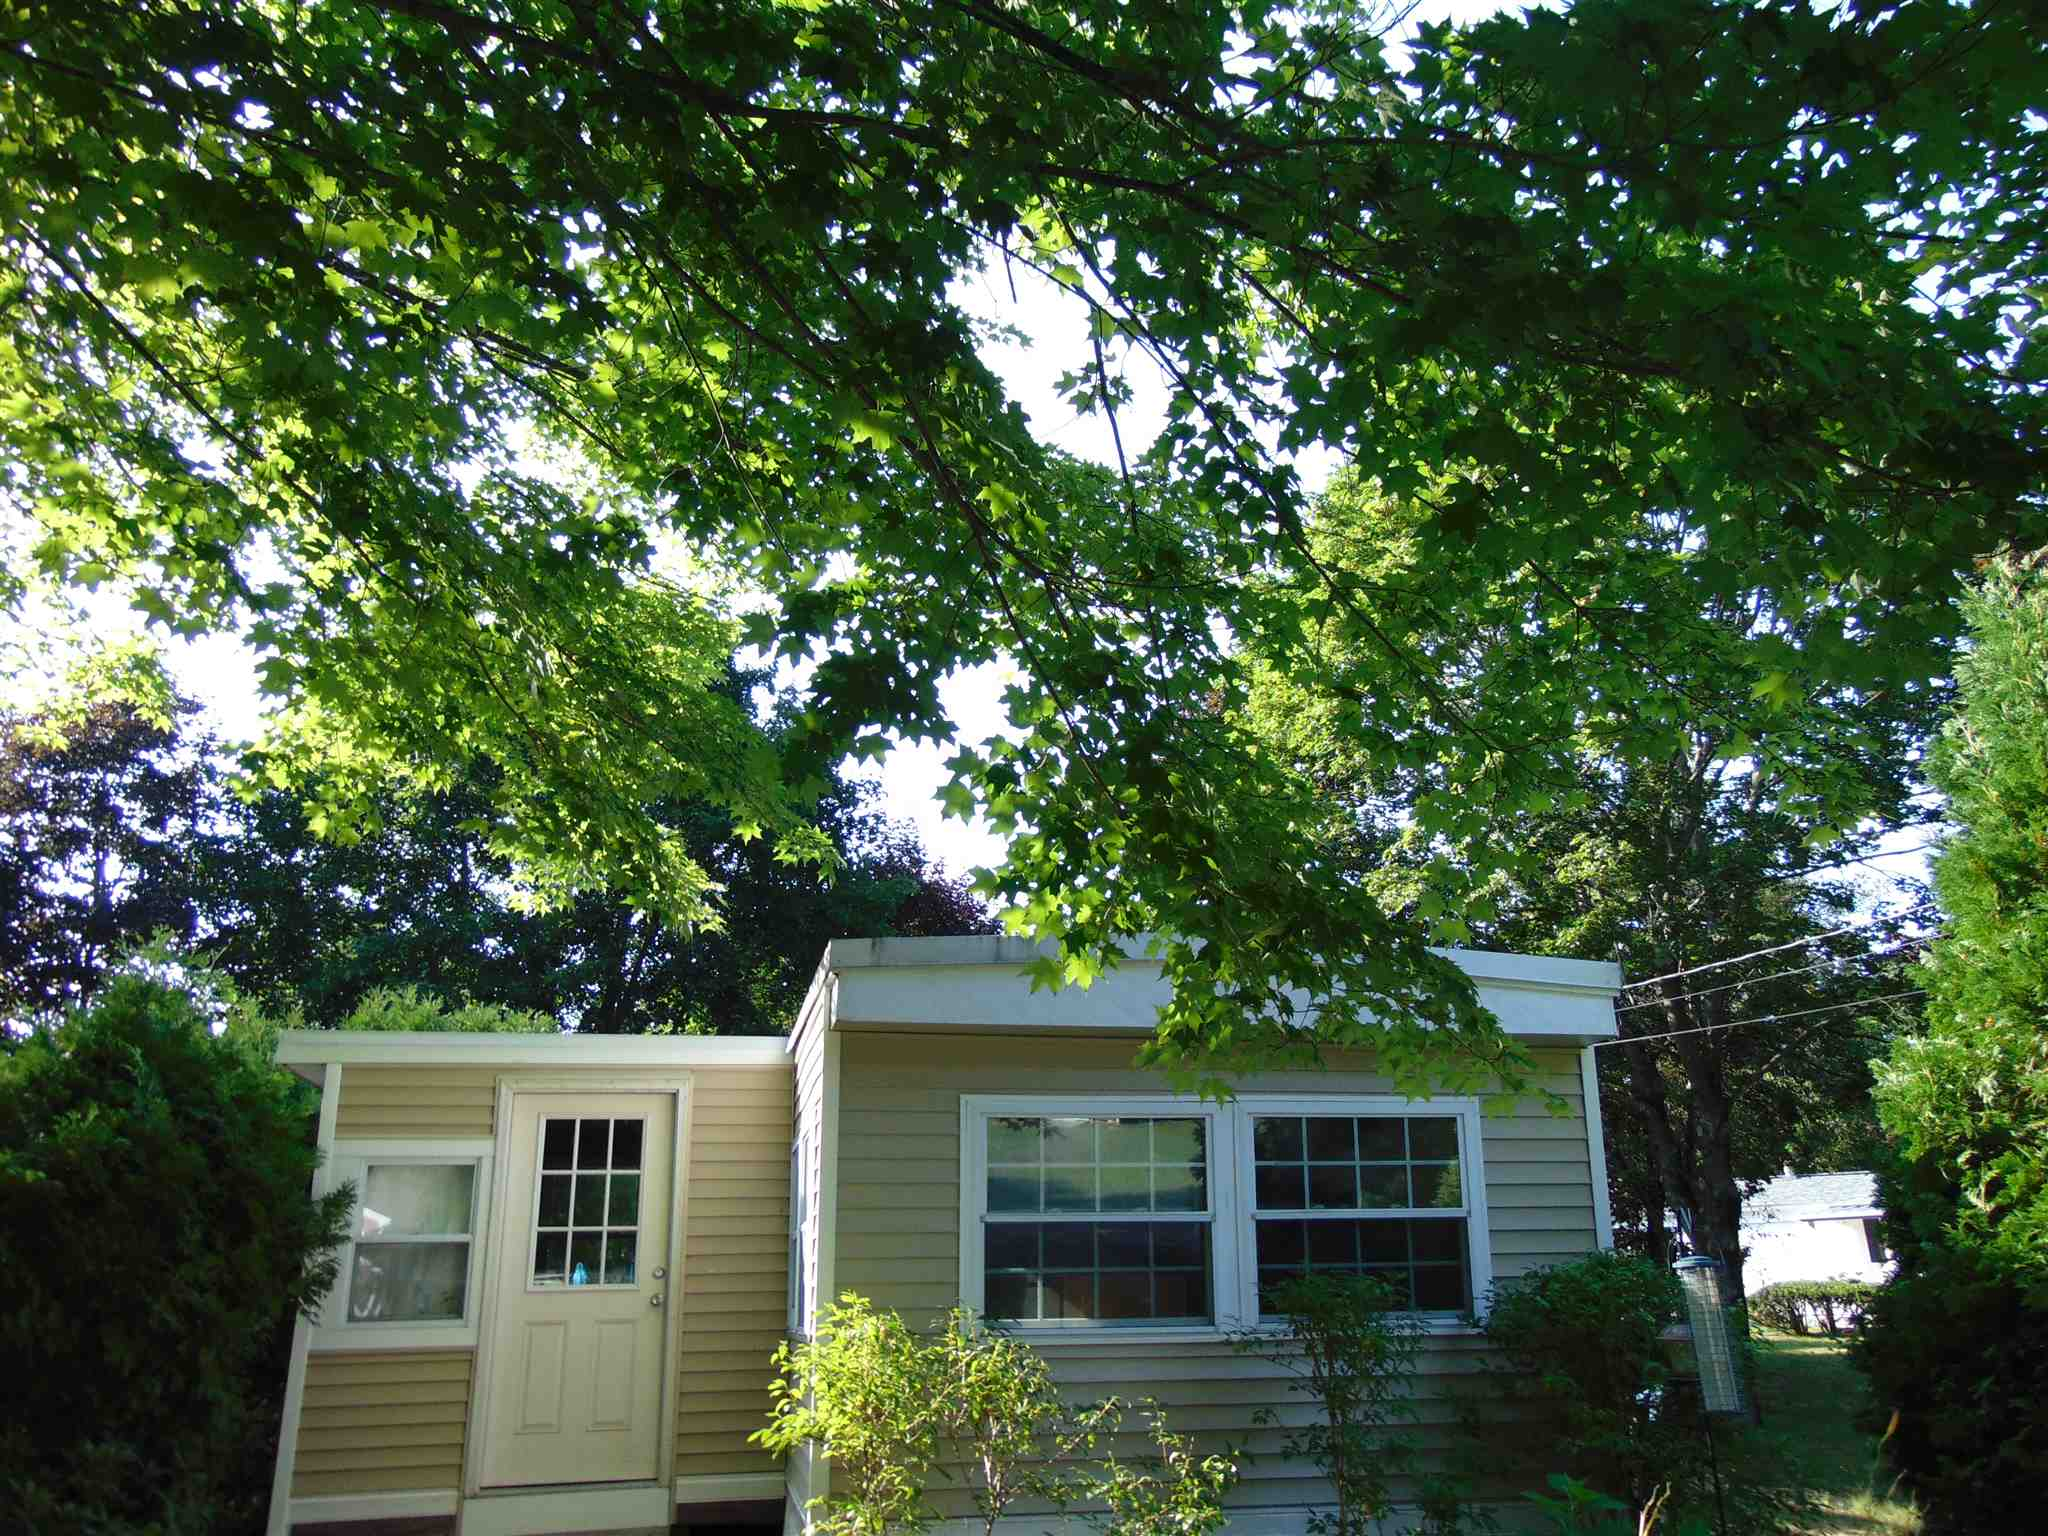 MLS 4819631: 2 LEEWOOD Trail-Unit 2, Nashua NH